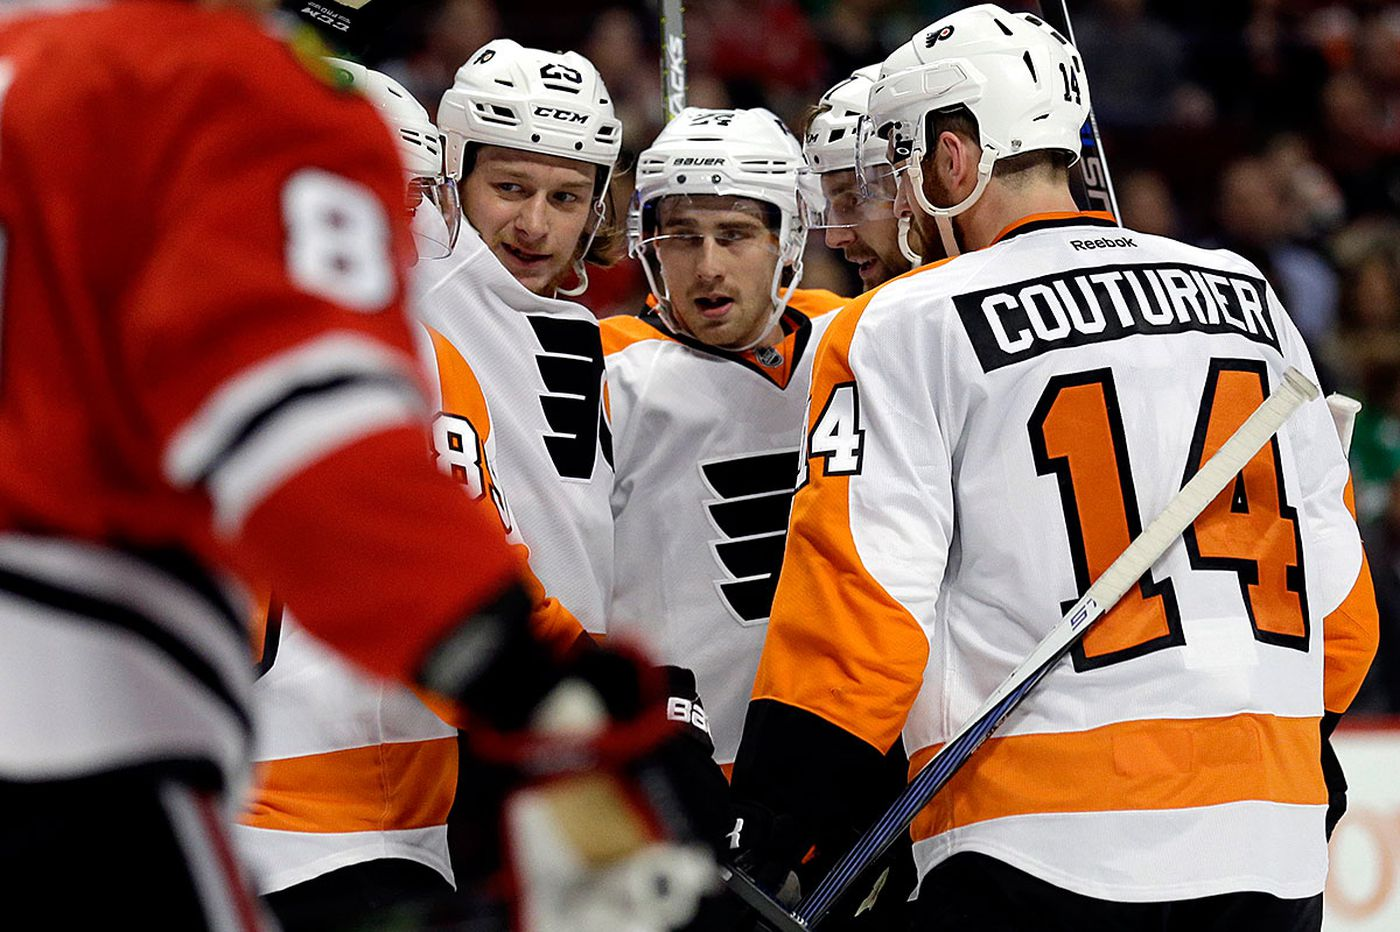 Flyers beat Blackhawks, move into playoff position